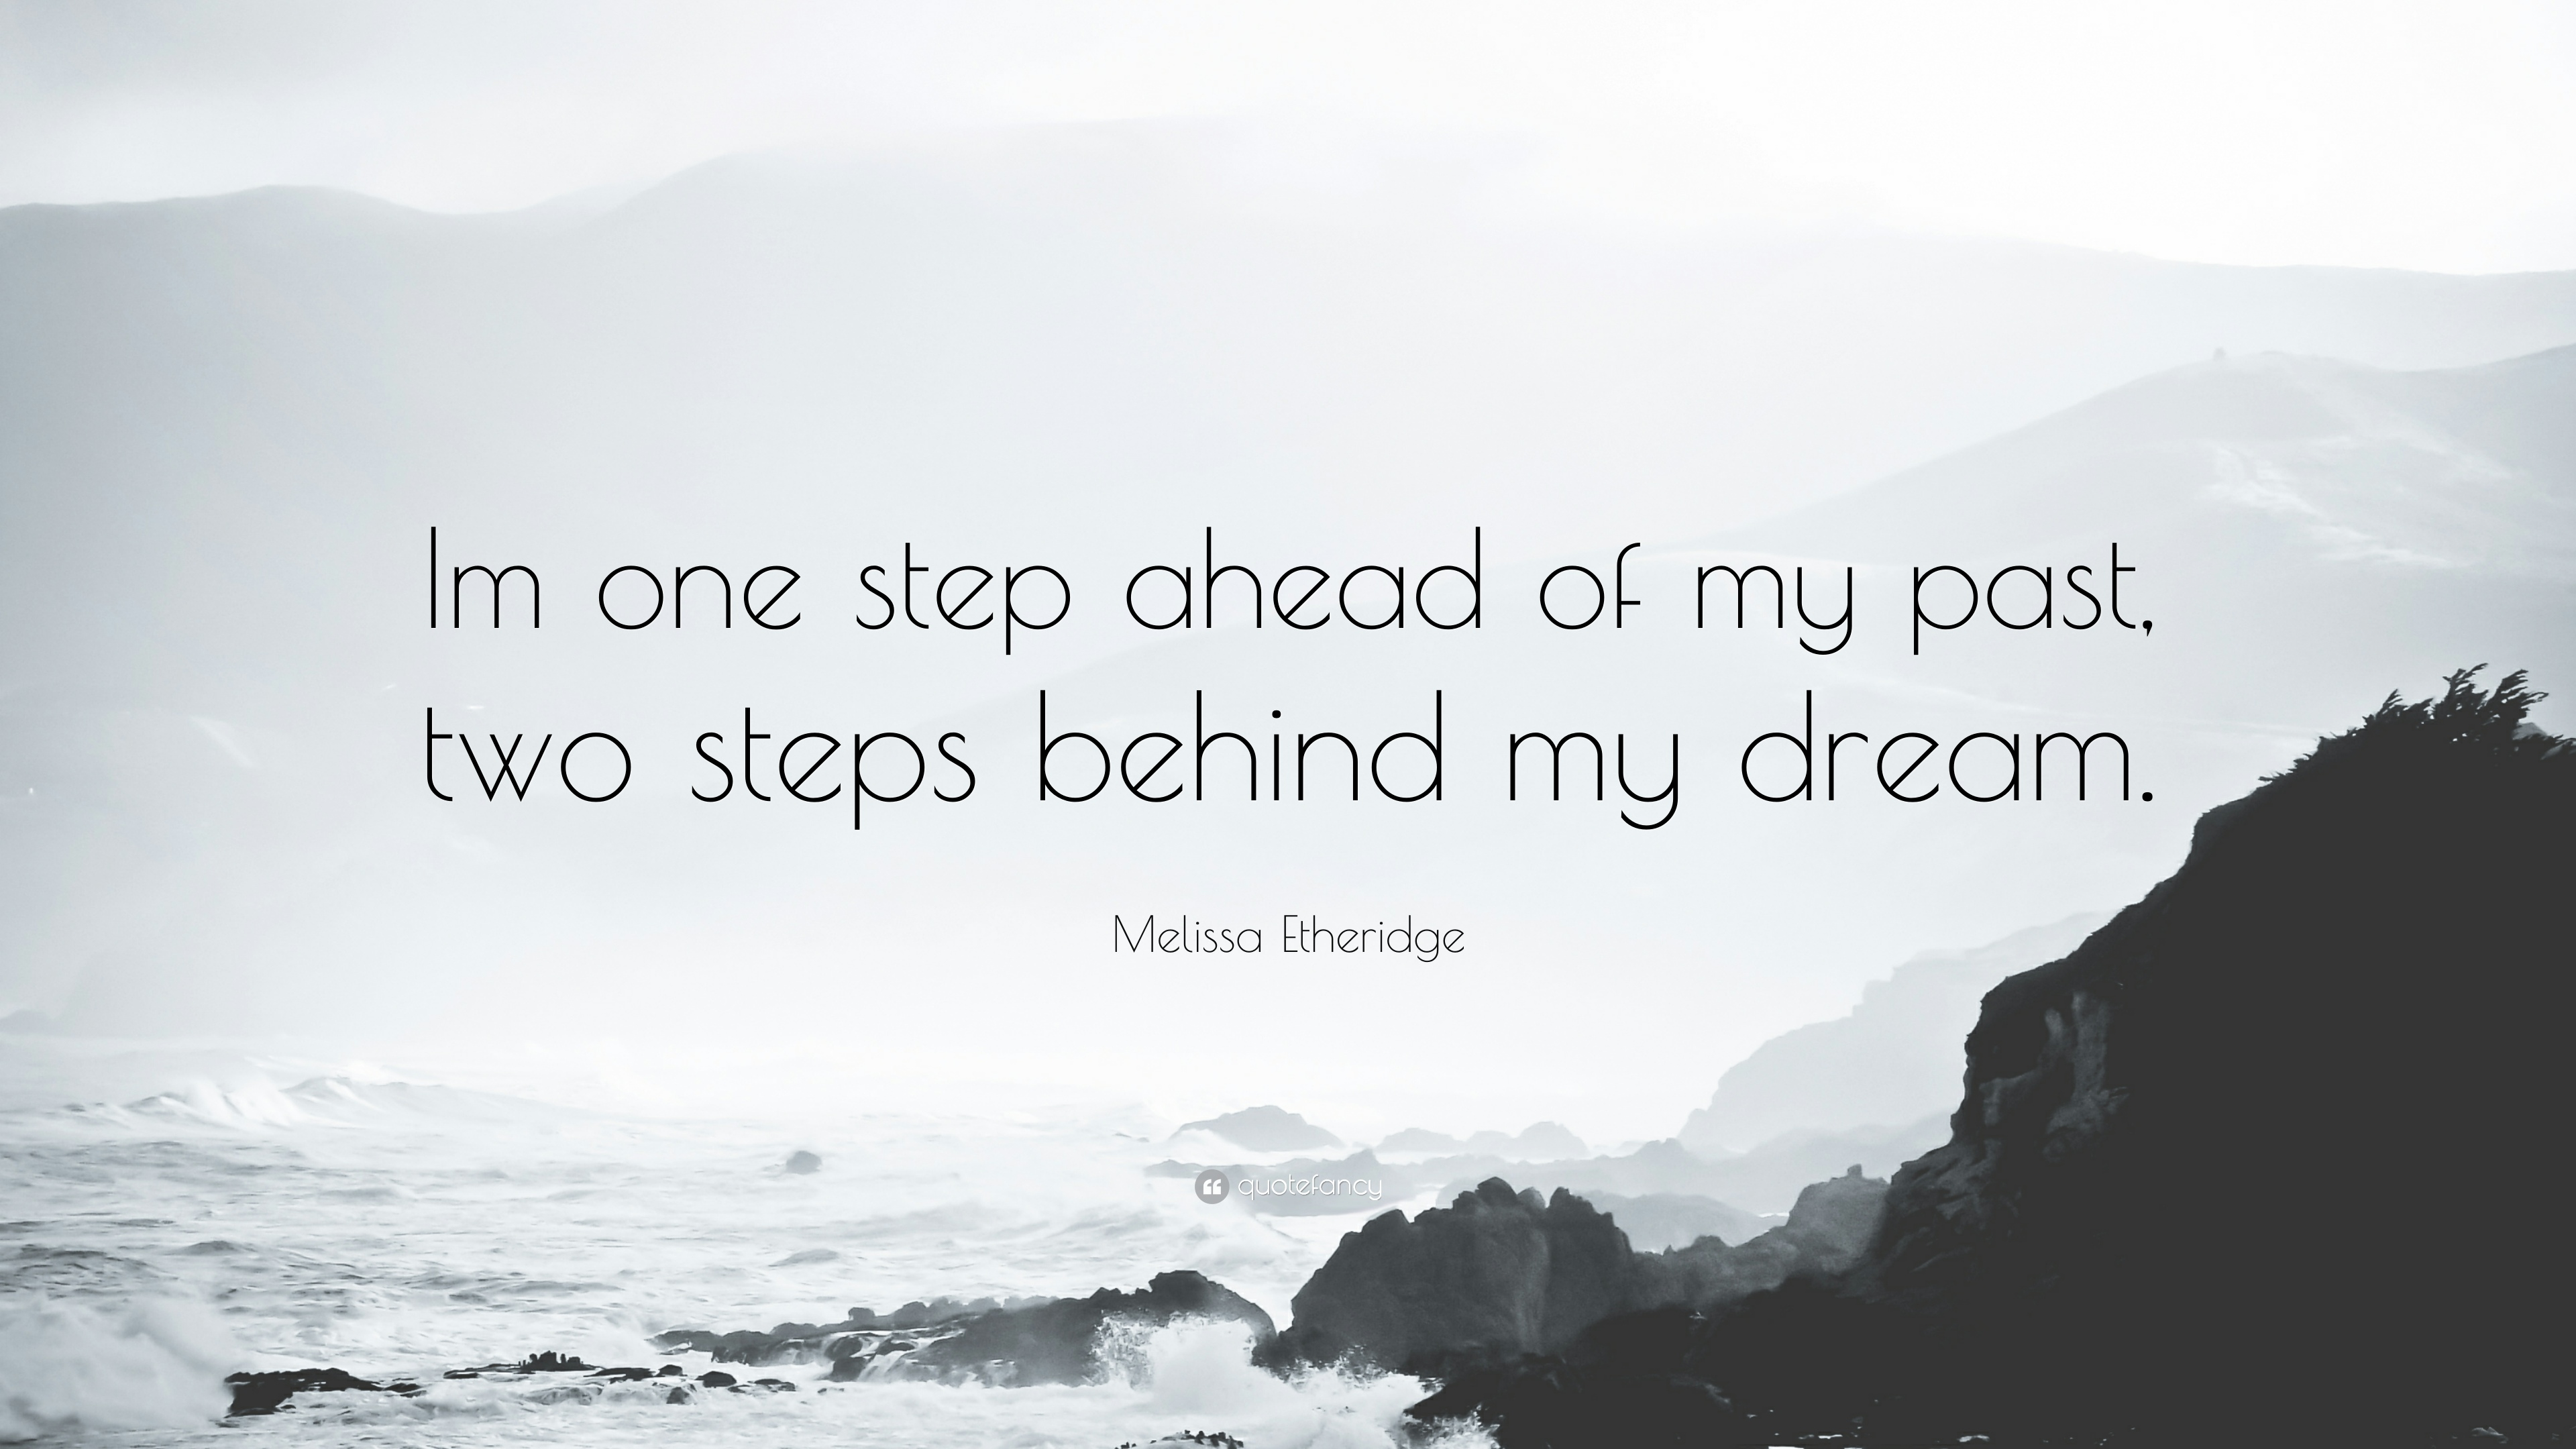 Charmant Melissa Etheridge Quote: U201cIm One Step Ahead Of My Past, Two Steps Behind